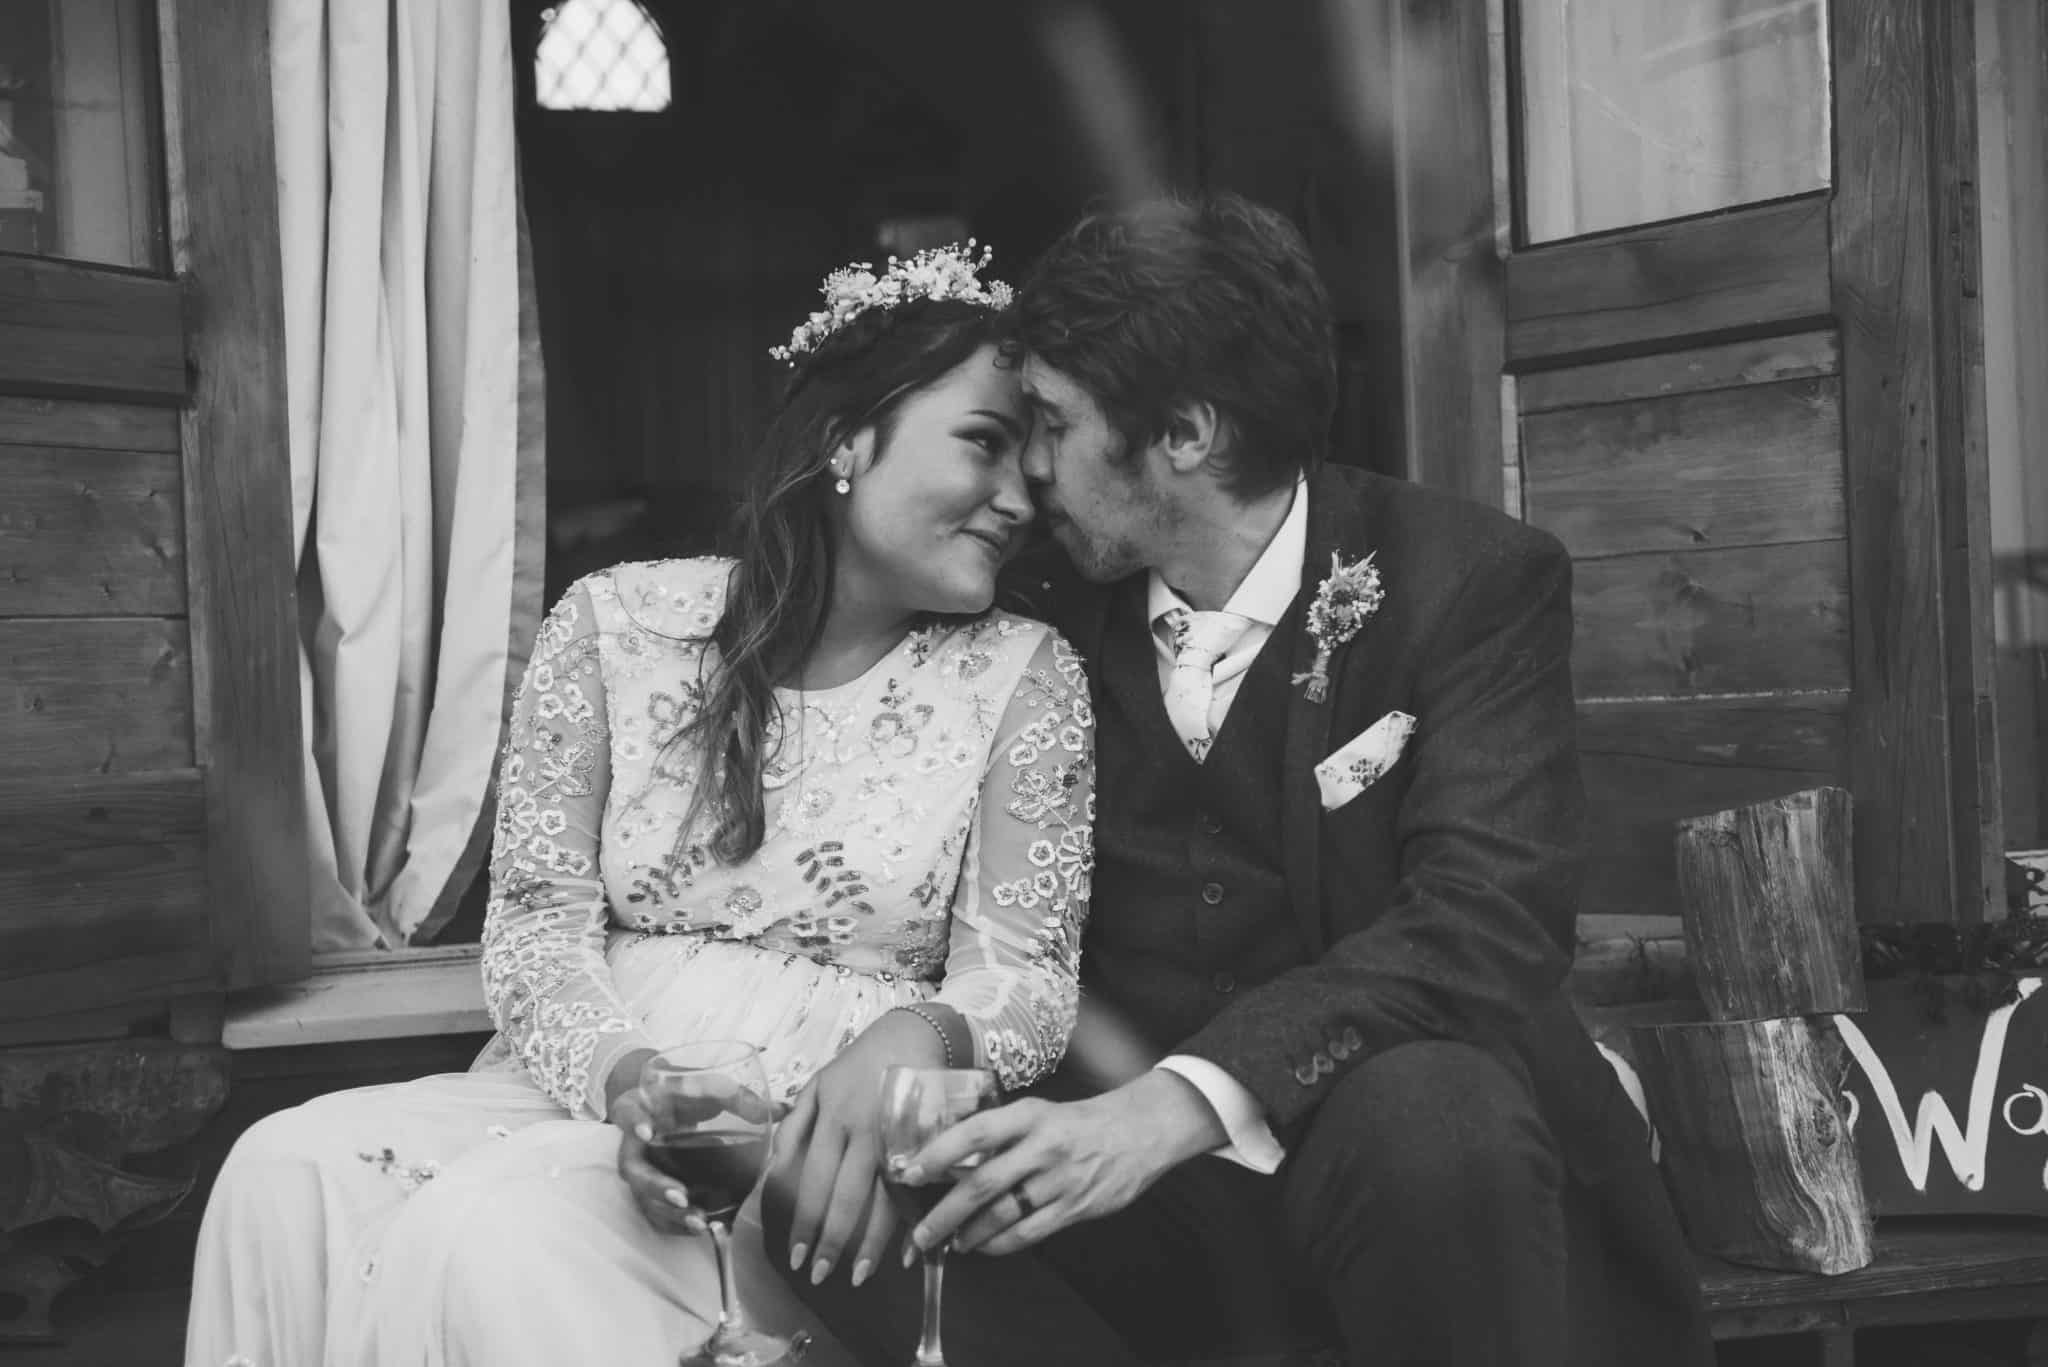 Best Wedding Photographer South Wales Bride and groom embrace sitting on a step